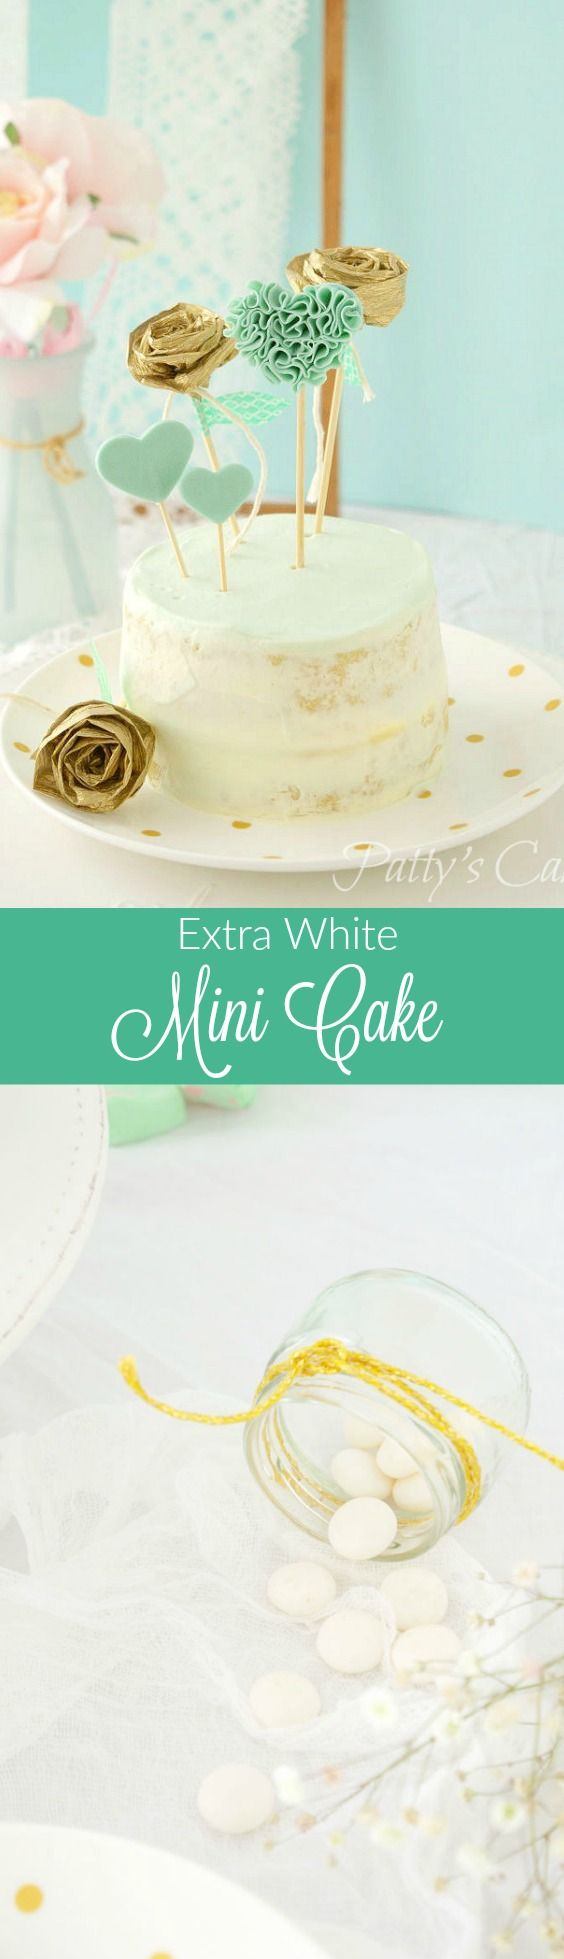 Extra white mini cake for weddings, baptisms,... white, mint and gold decorations. English recipe included.  Tarta extra blanca para bodas, bautizos... Decoración blanca, menta (mint) y dorado. ¿Te atreves a ponerla en tu celebración?